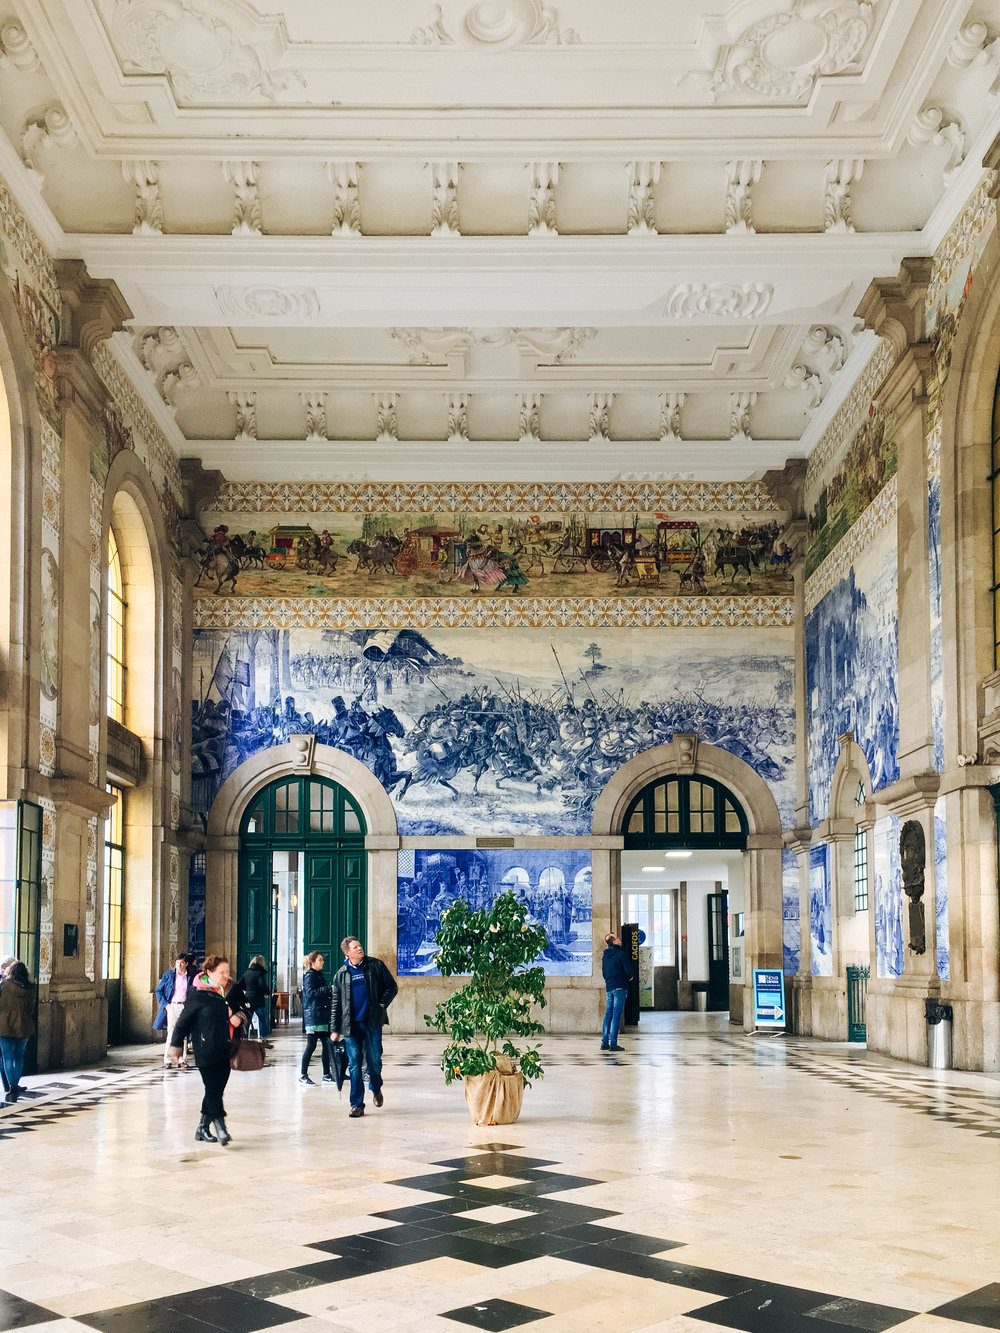 Entrance foyer at the São Bento station